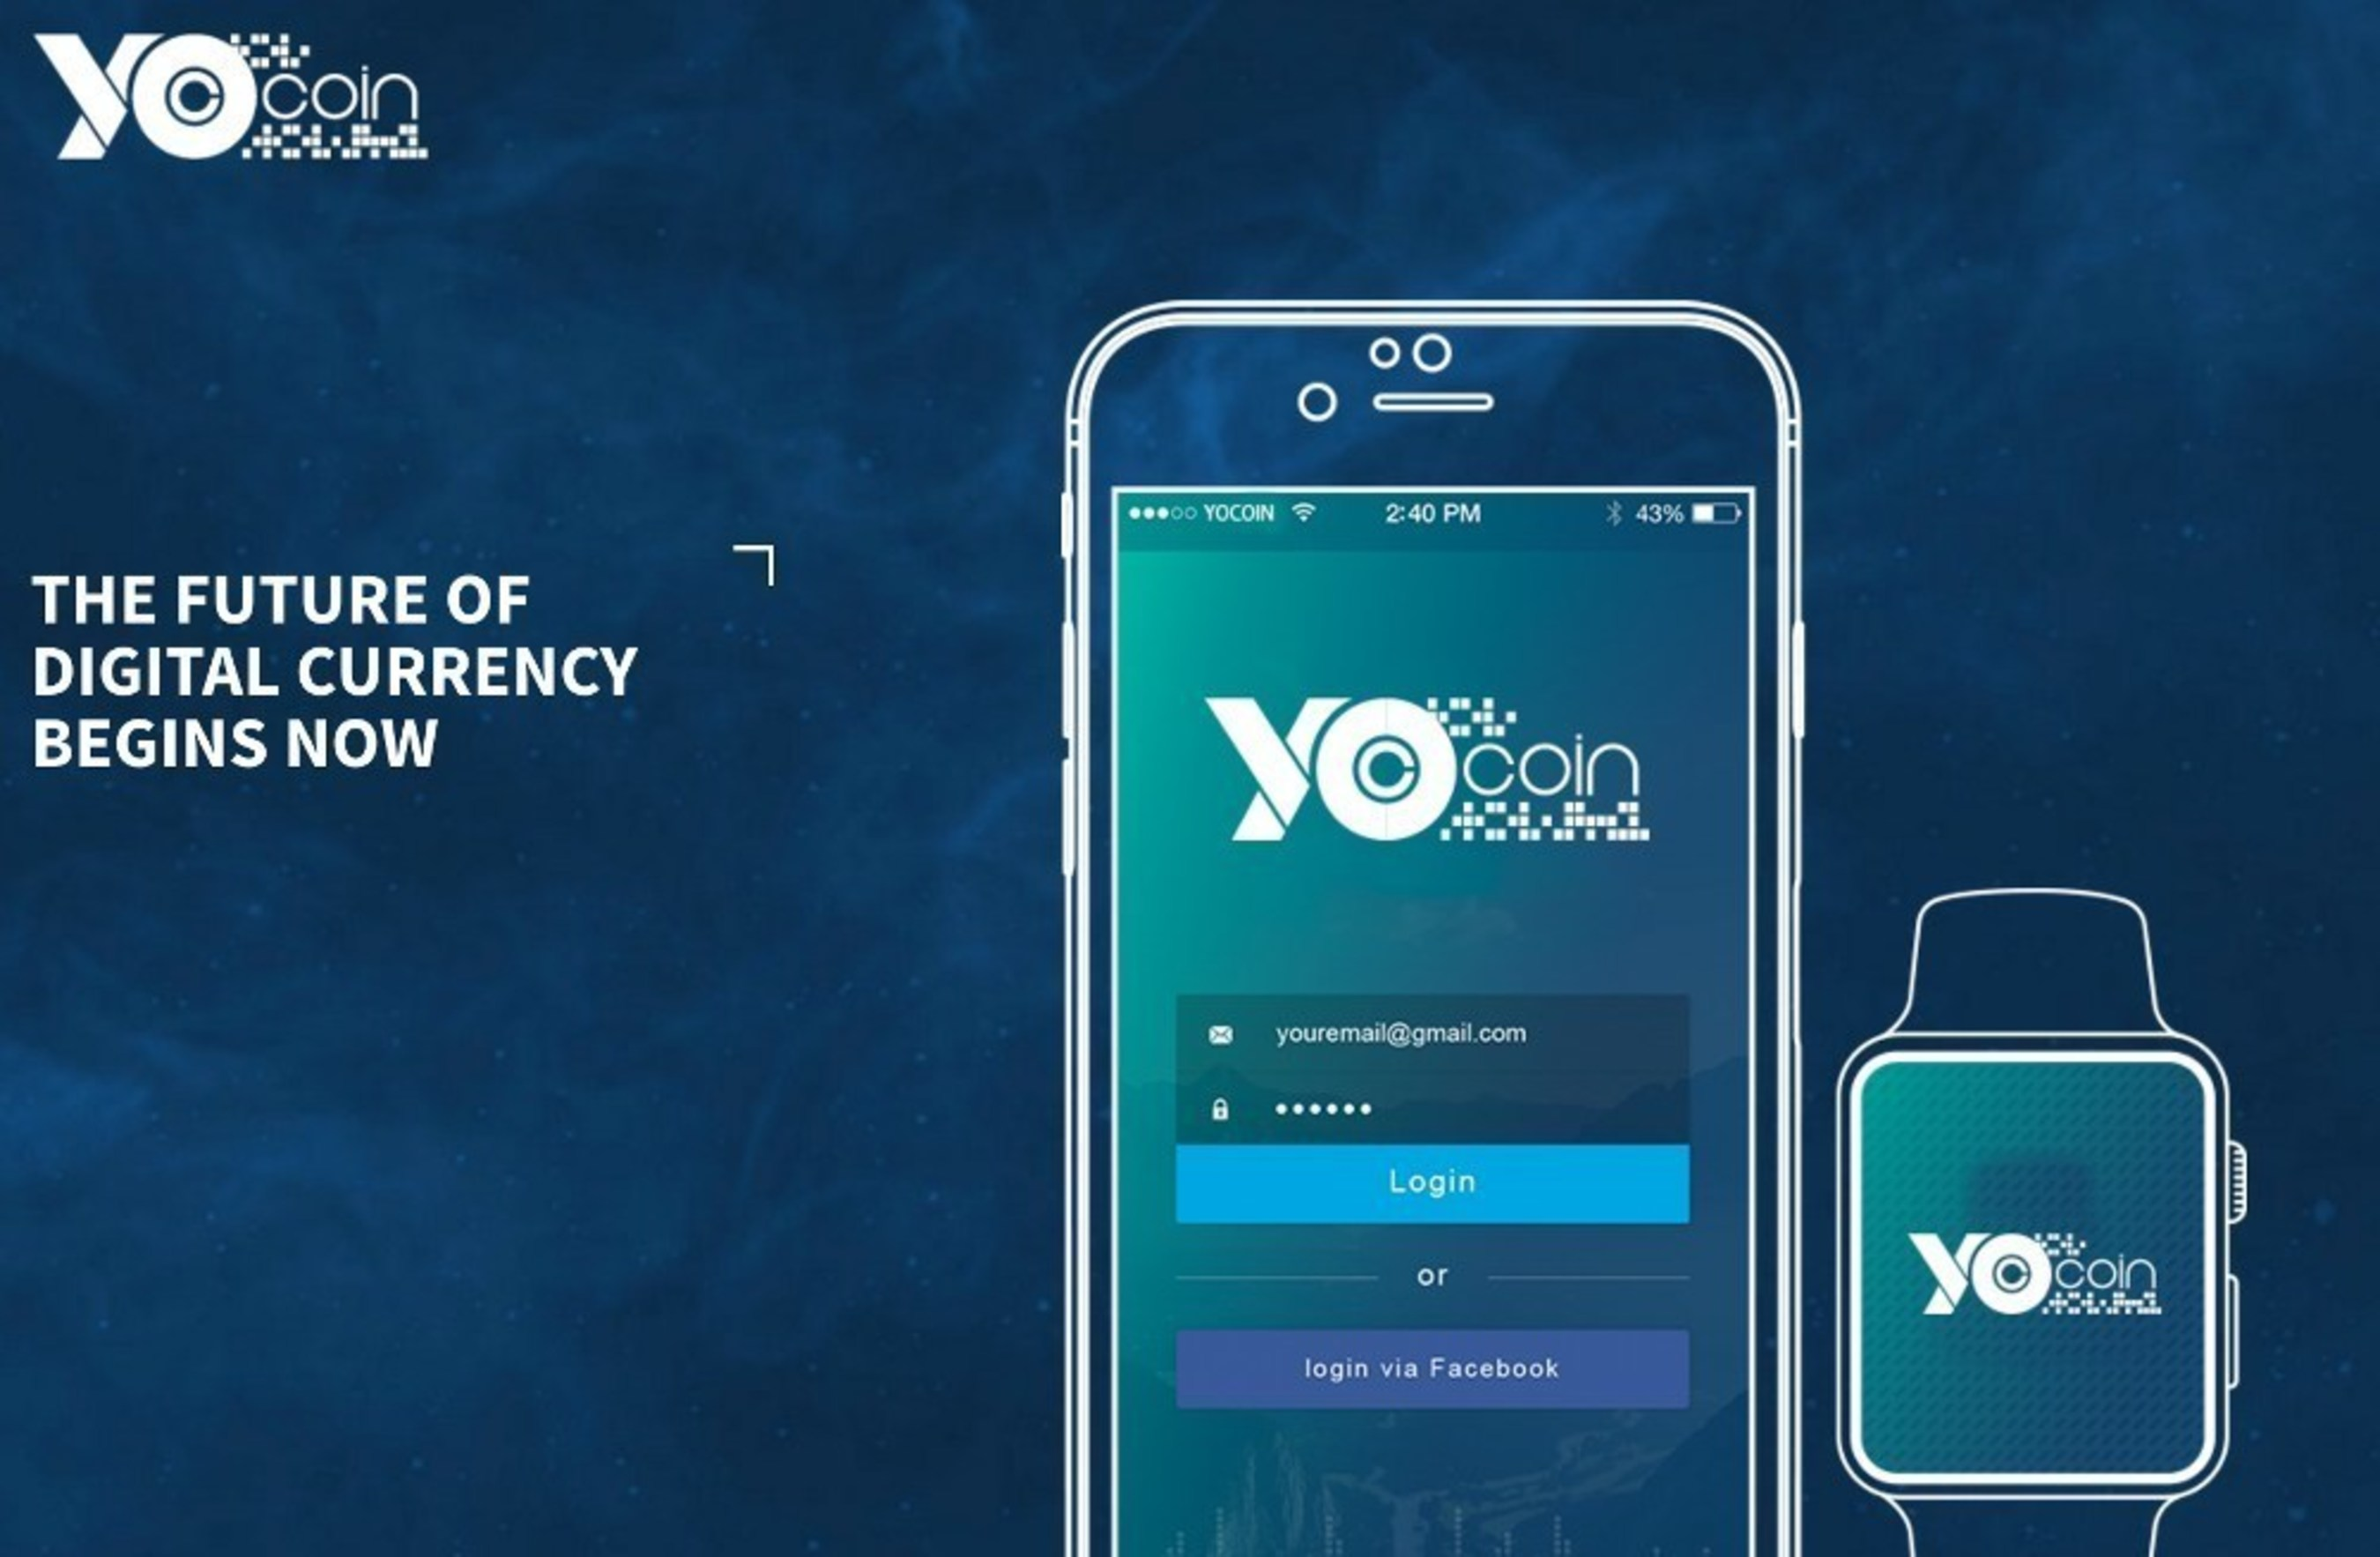 Formerly Based On The Scrypt Mining Algorithm YoCoin Now Enables Smart Contracts With A Wide Range Of Applications And Bonds Can Be